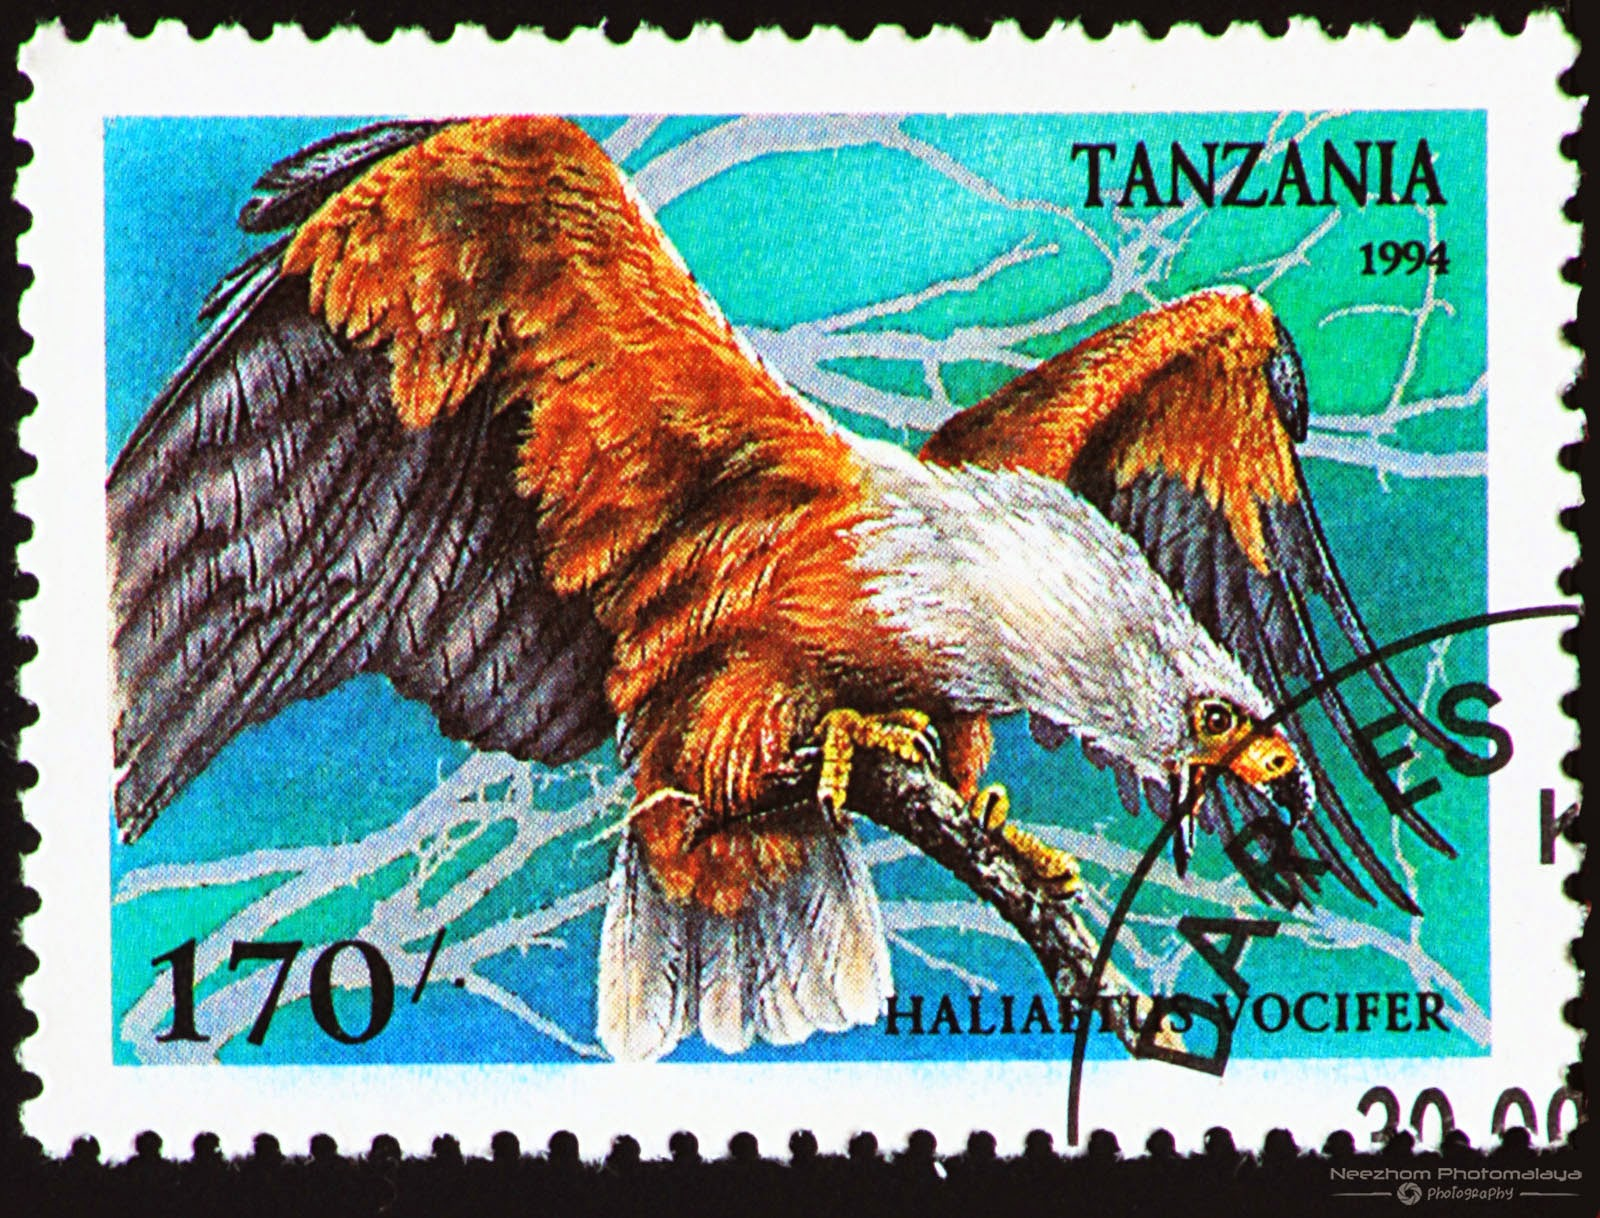 Tanzania 1994 Birds of Prey stamp - African Fish Eagle (Haliaetus vocifer) 170 s